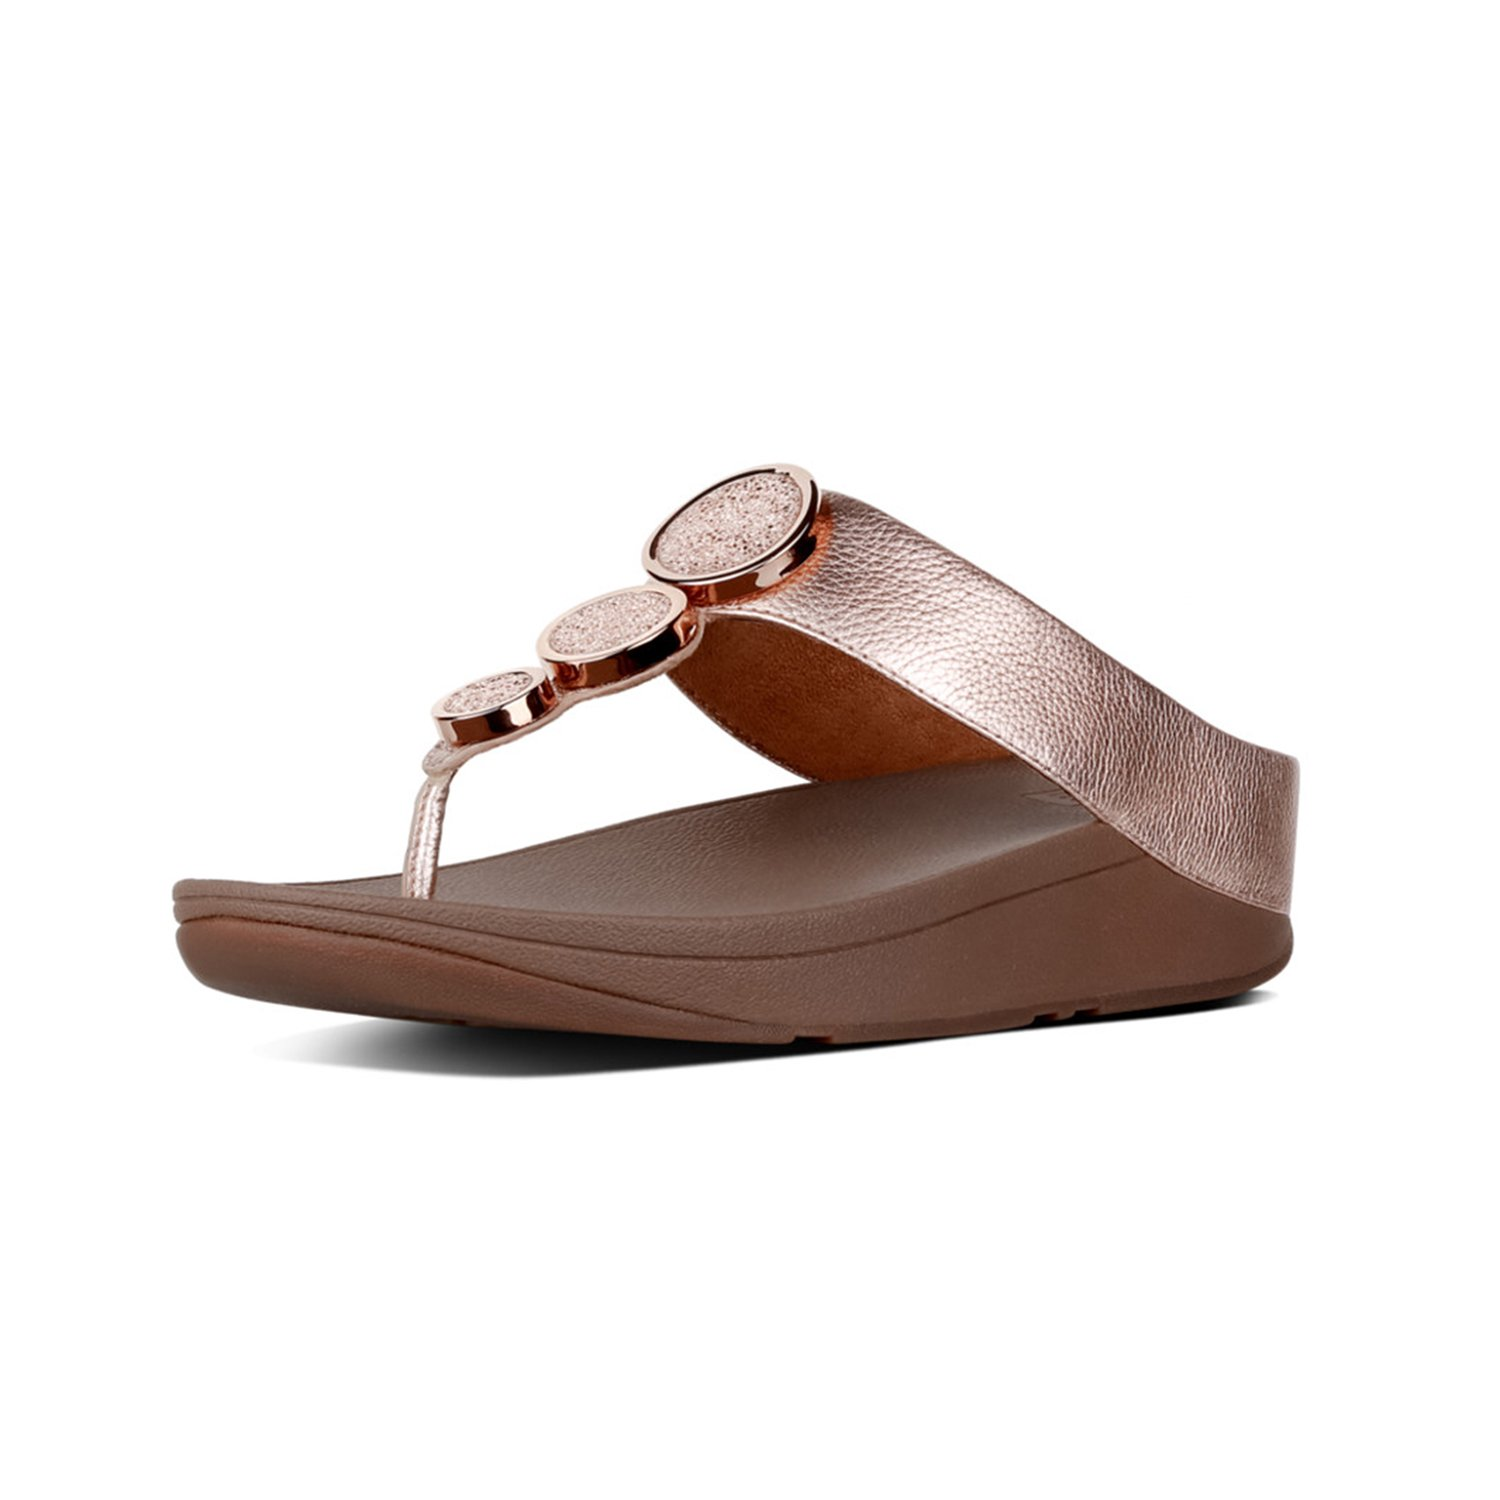 06934295d9bf Fitflop Women s s Halo Tm Toe Thong Sandals Flip Flops  Amazon.co.uk  Shoes    Bags